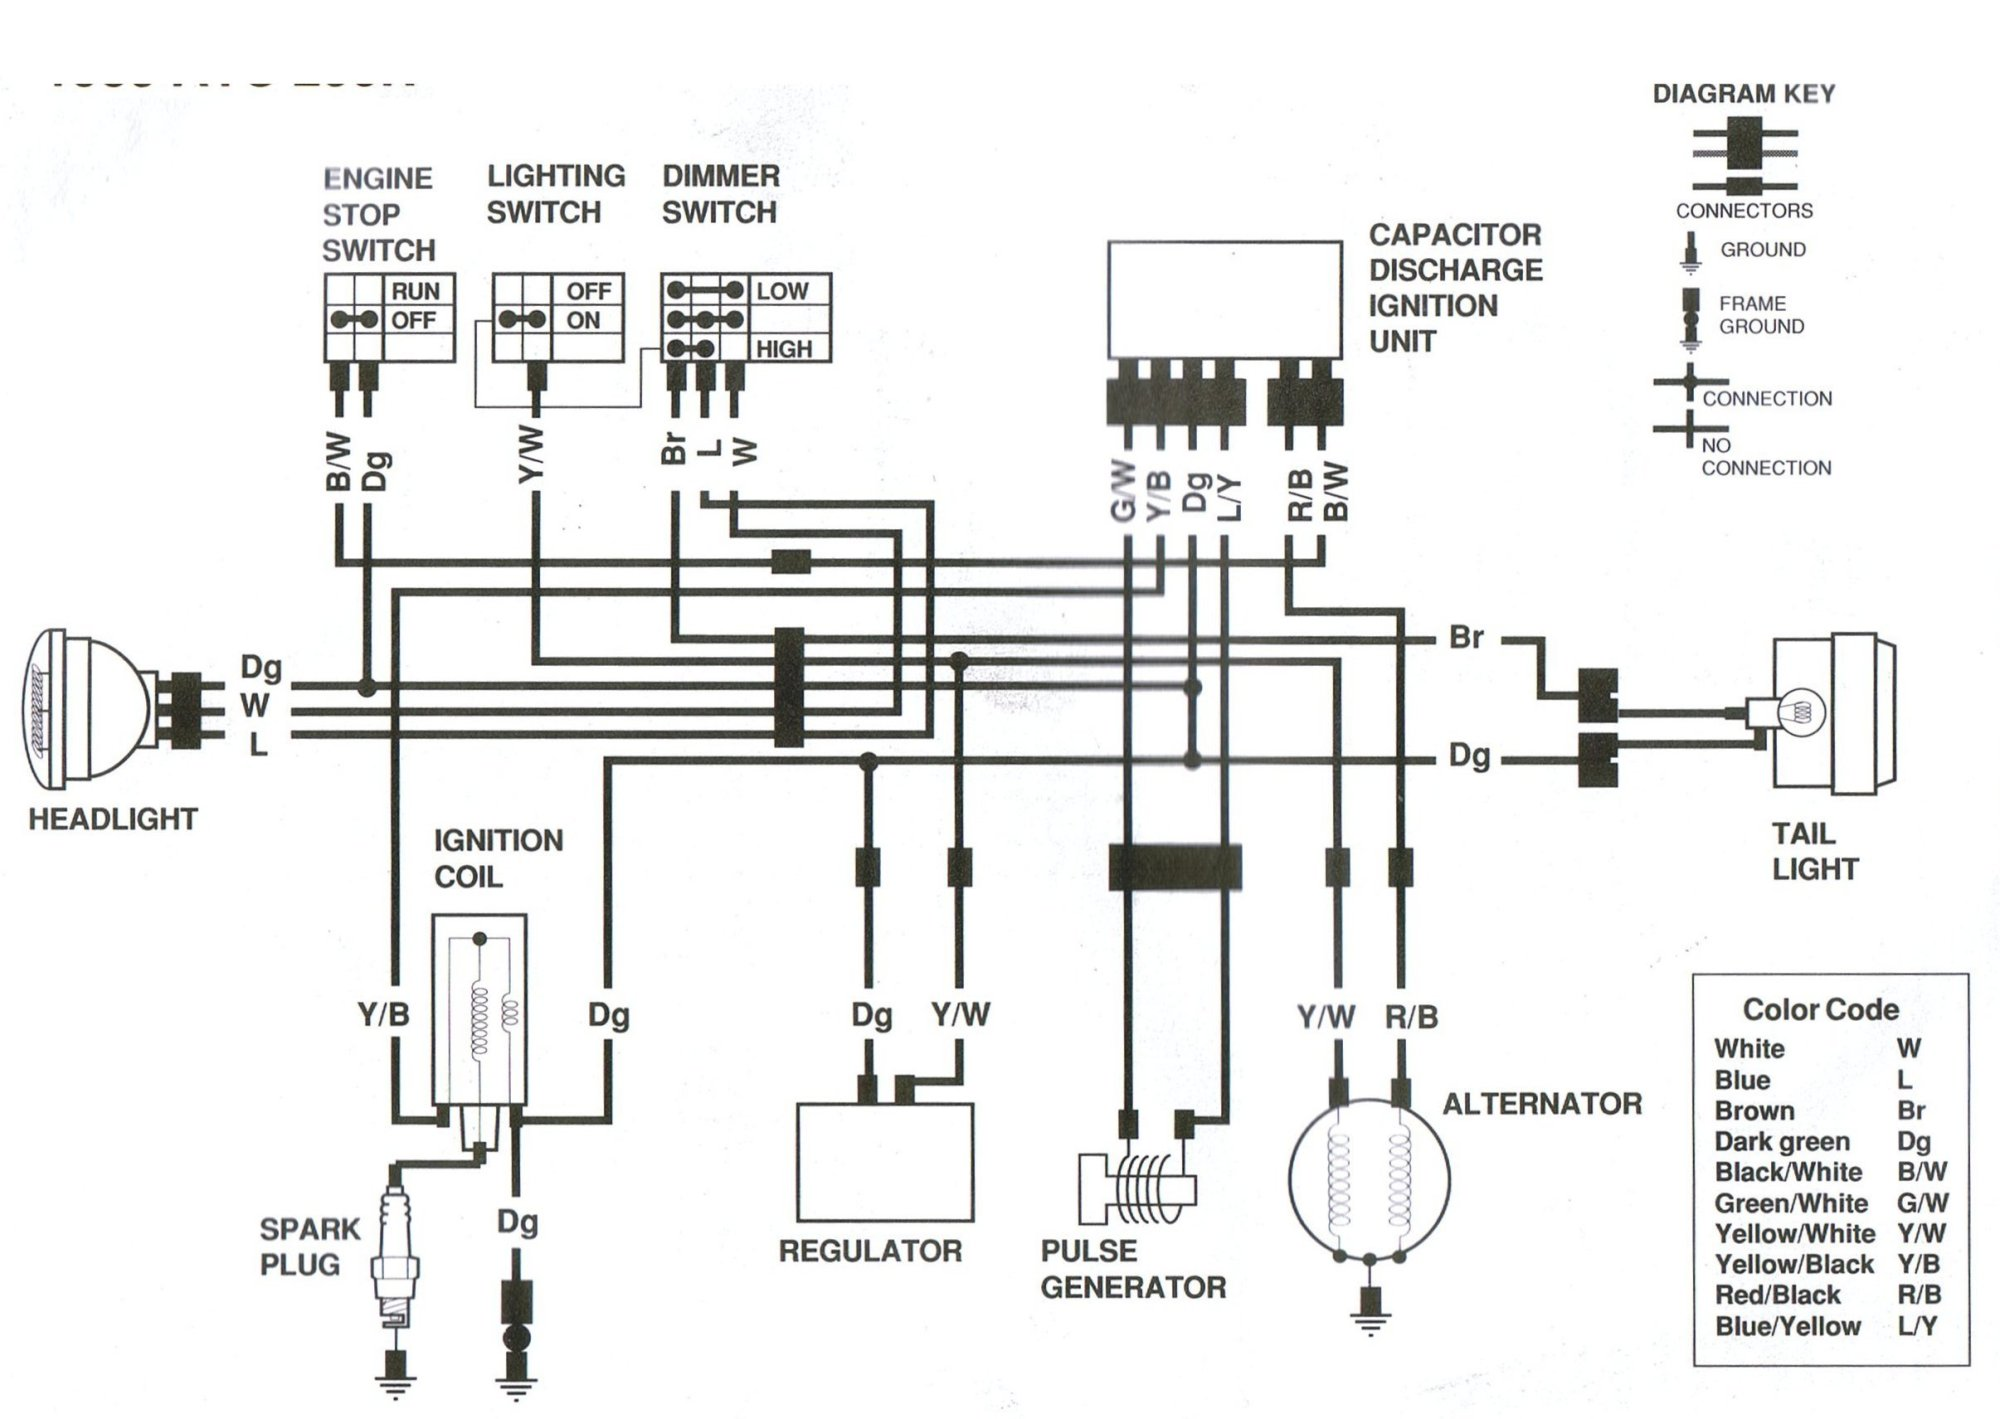 hight resolution of pw50 wiring diagram simple wiring diagram rh 2 mara cujas de 1982 yamaha pw50 wiring diagram